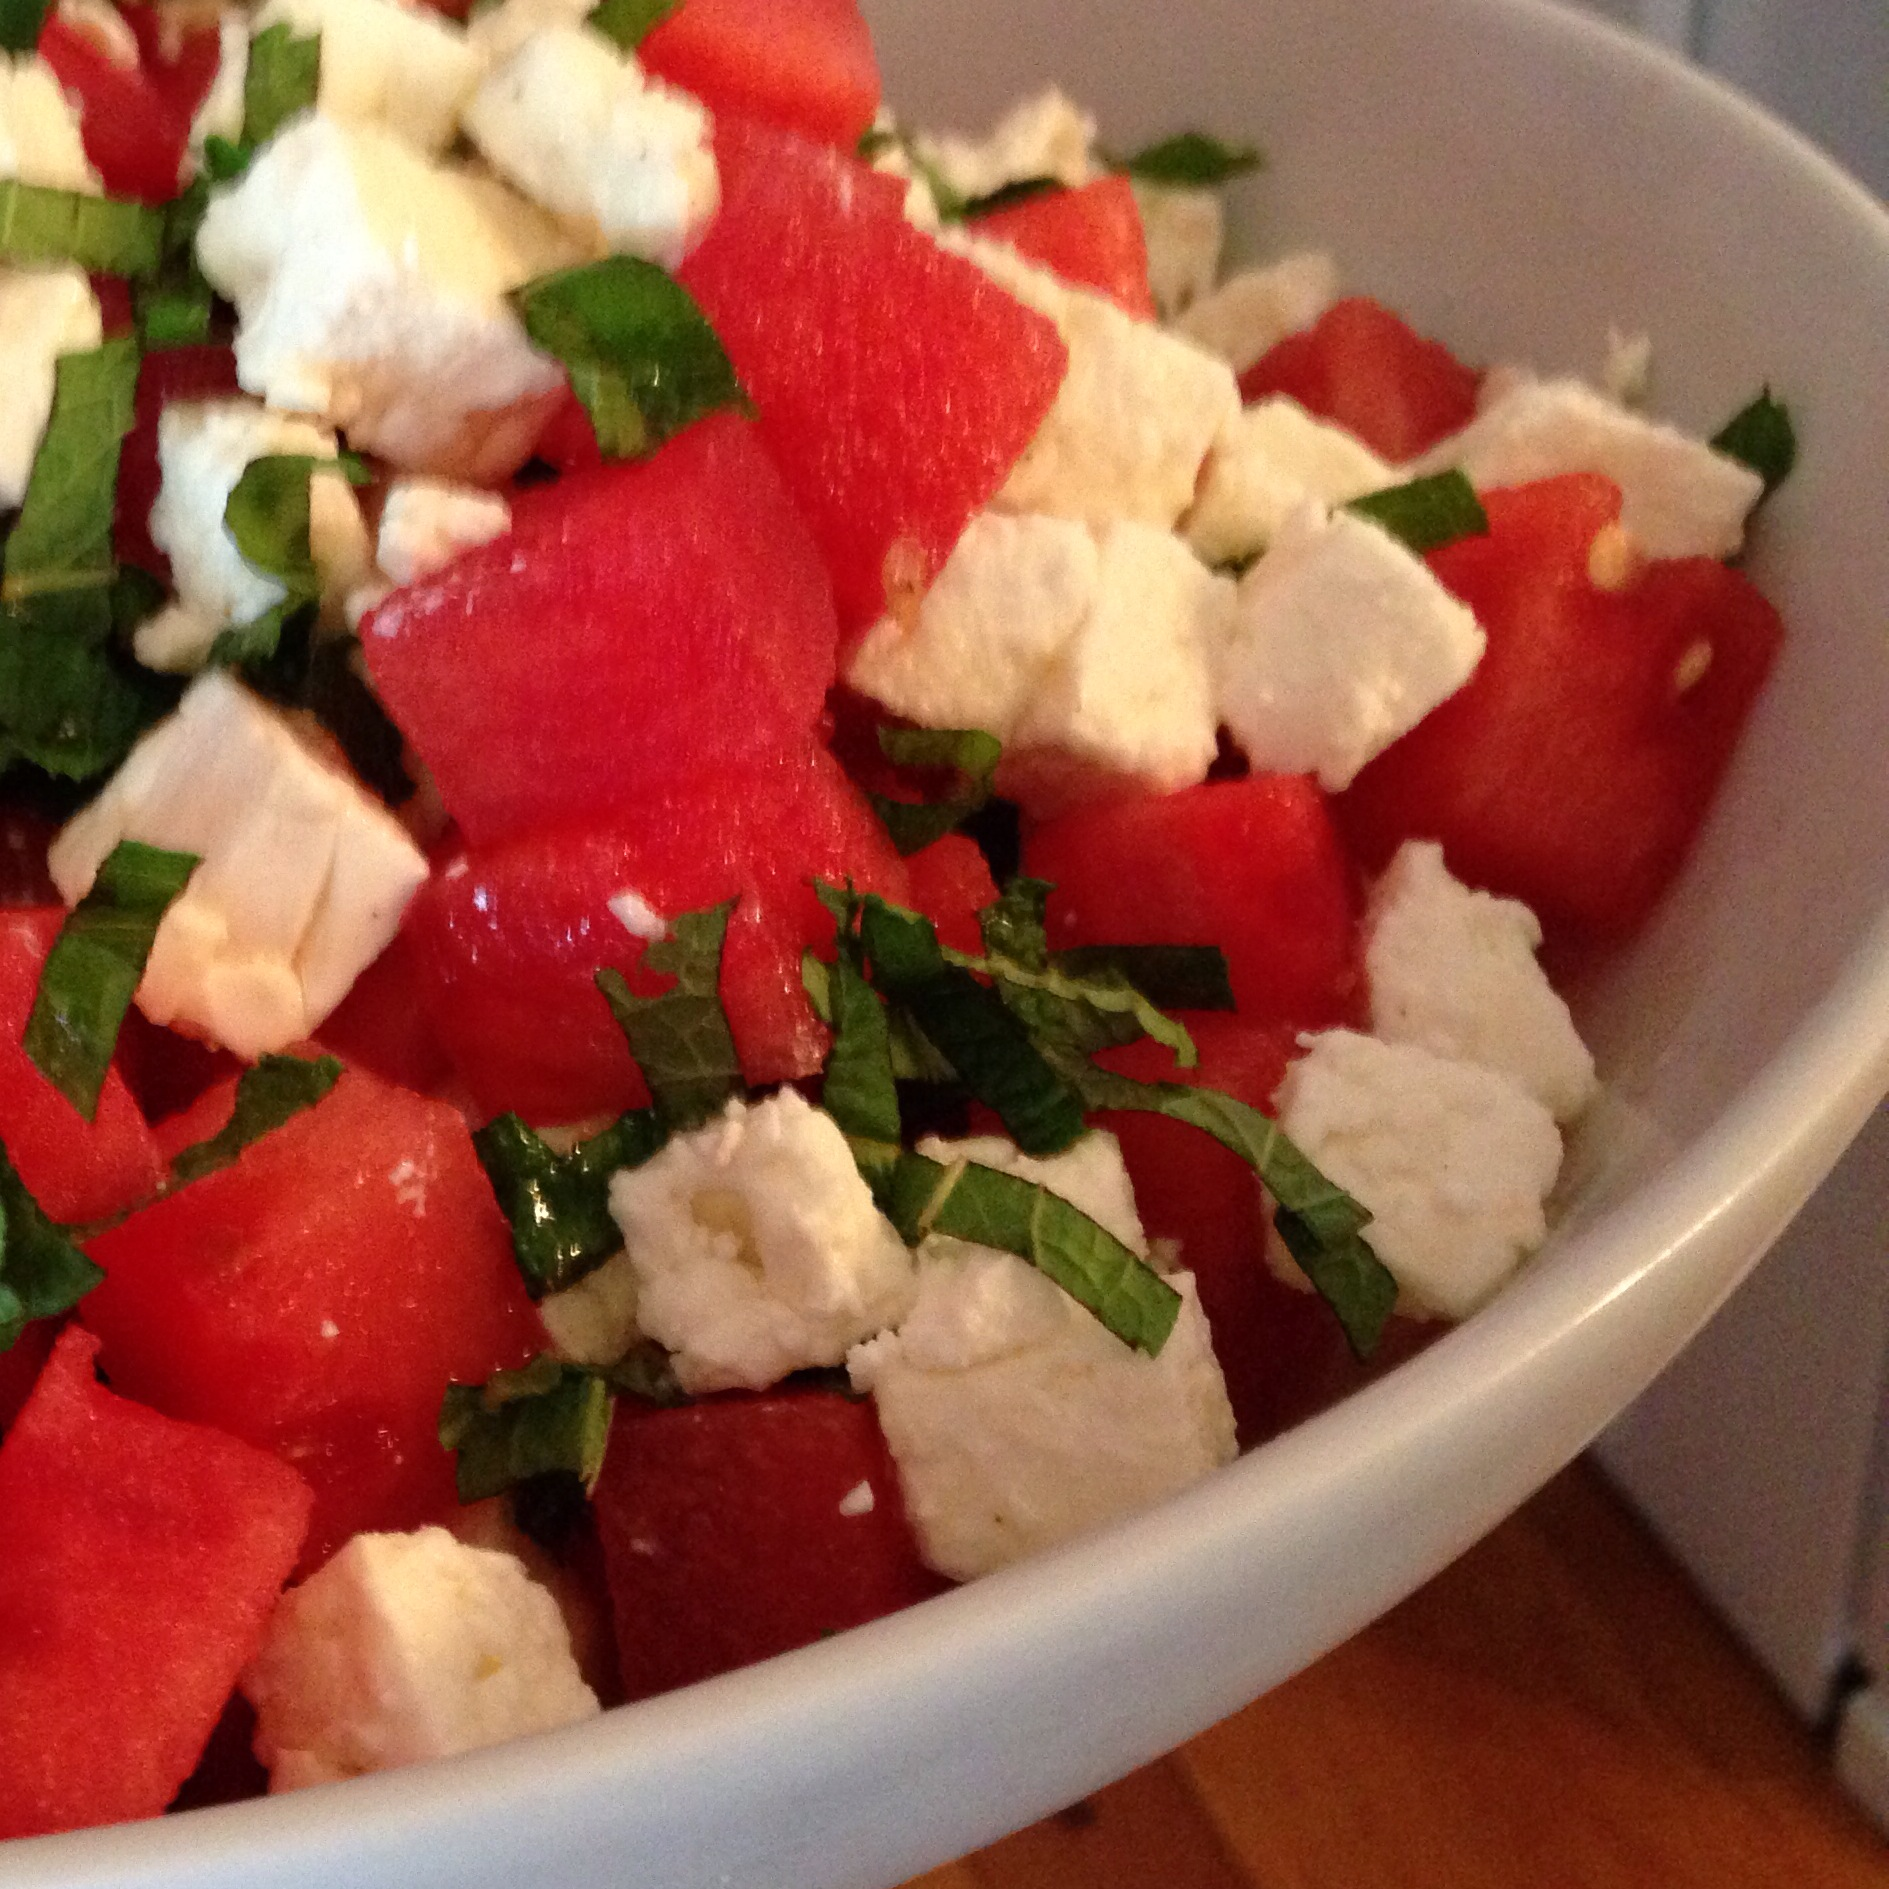 Mint premii bet at home mobilna free-bet z bet at home and Watermelon Salad with Feta Cheese